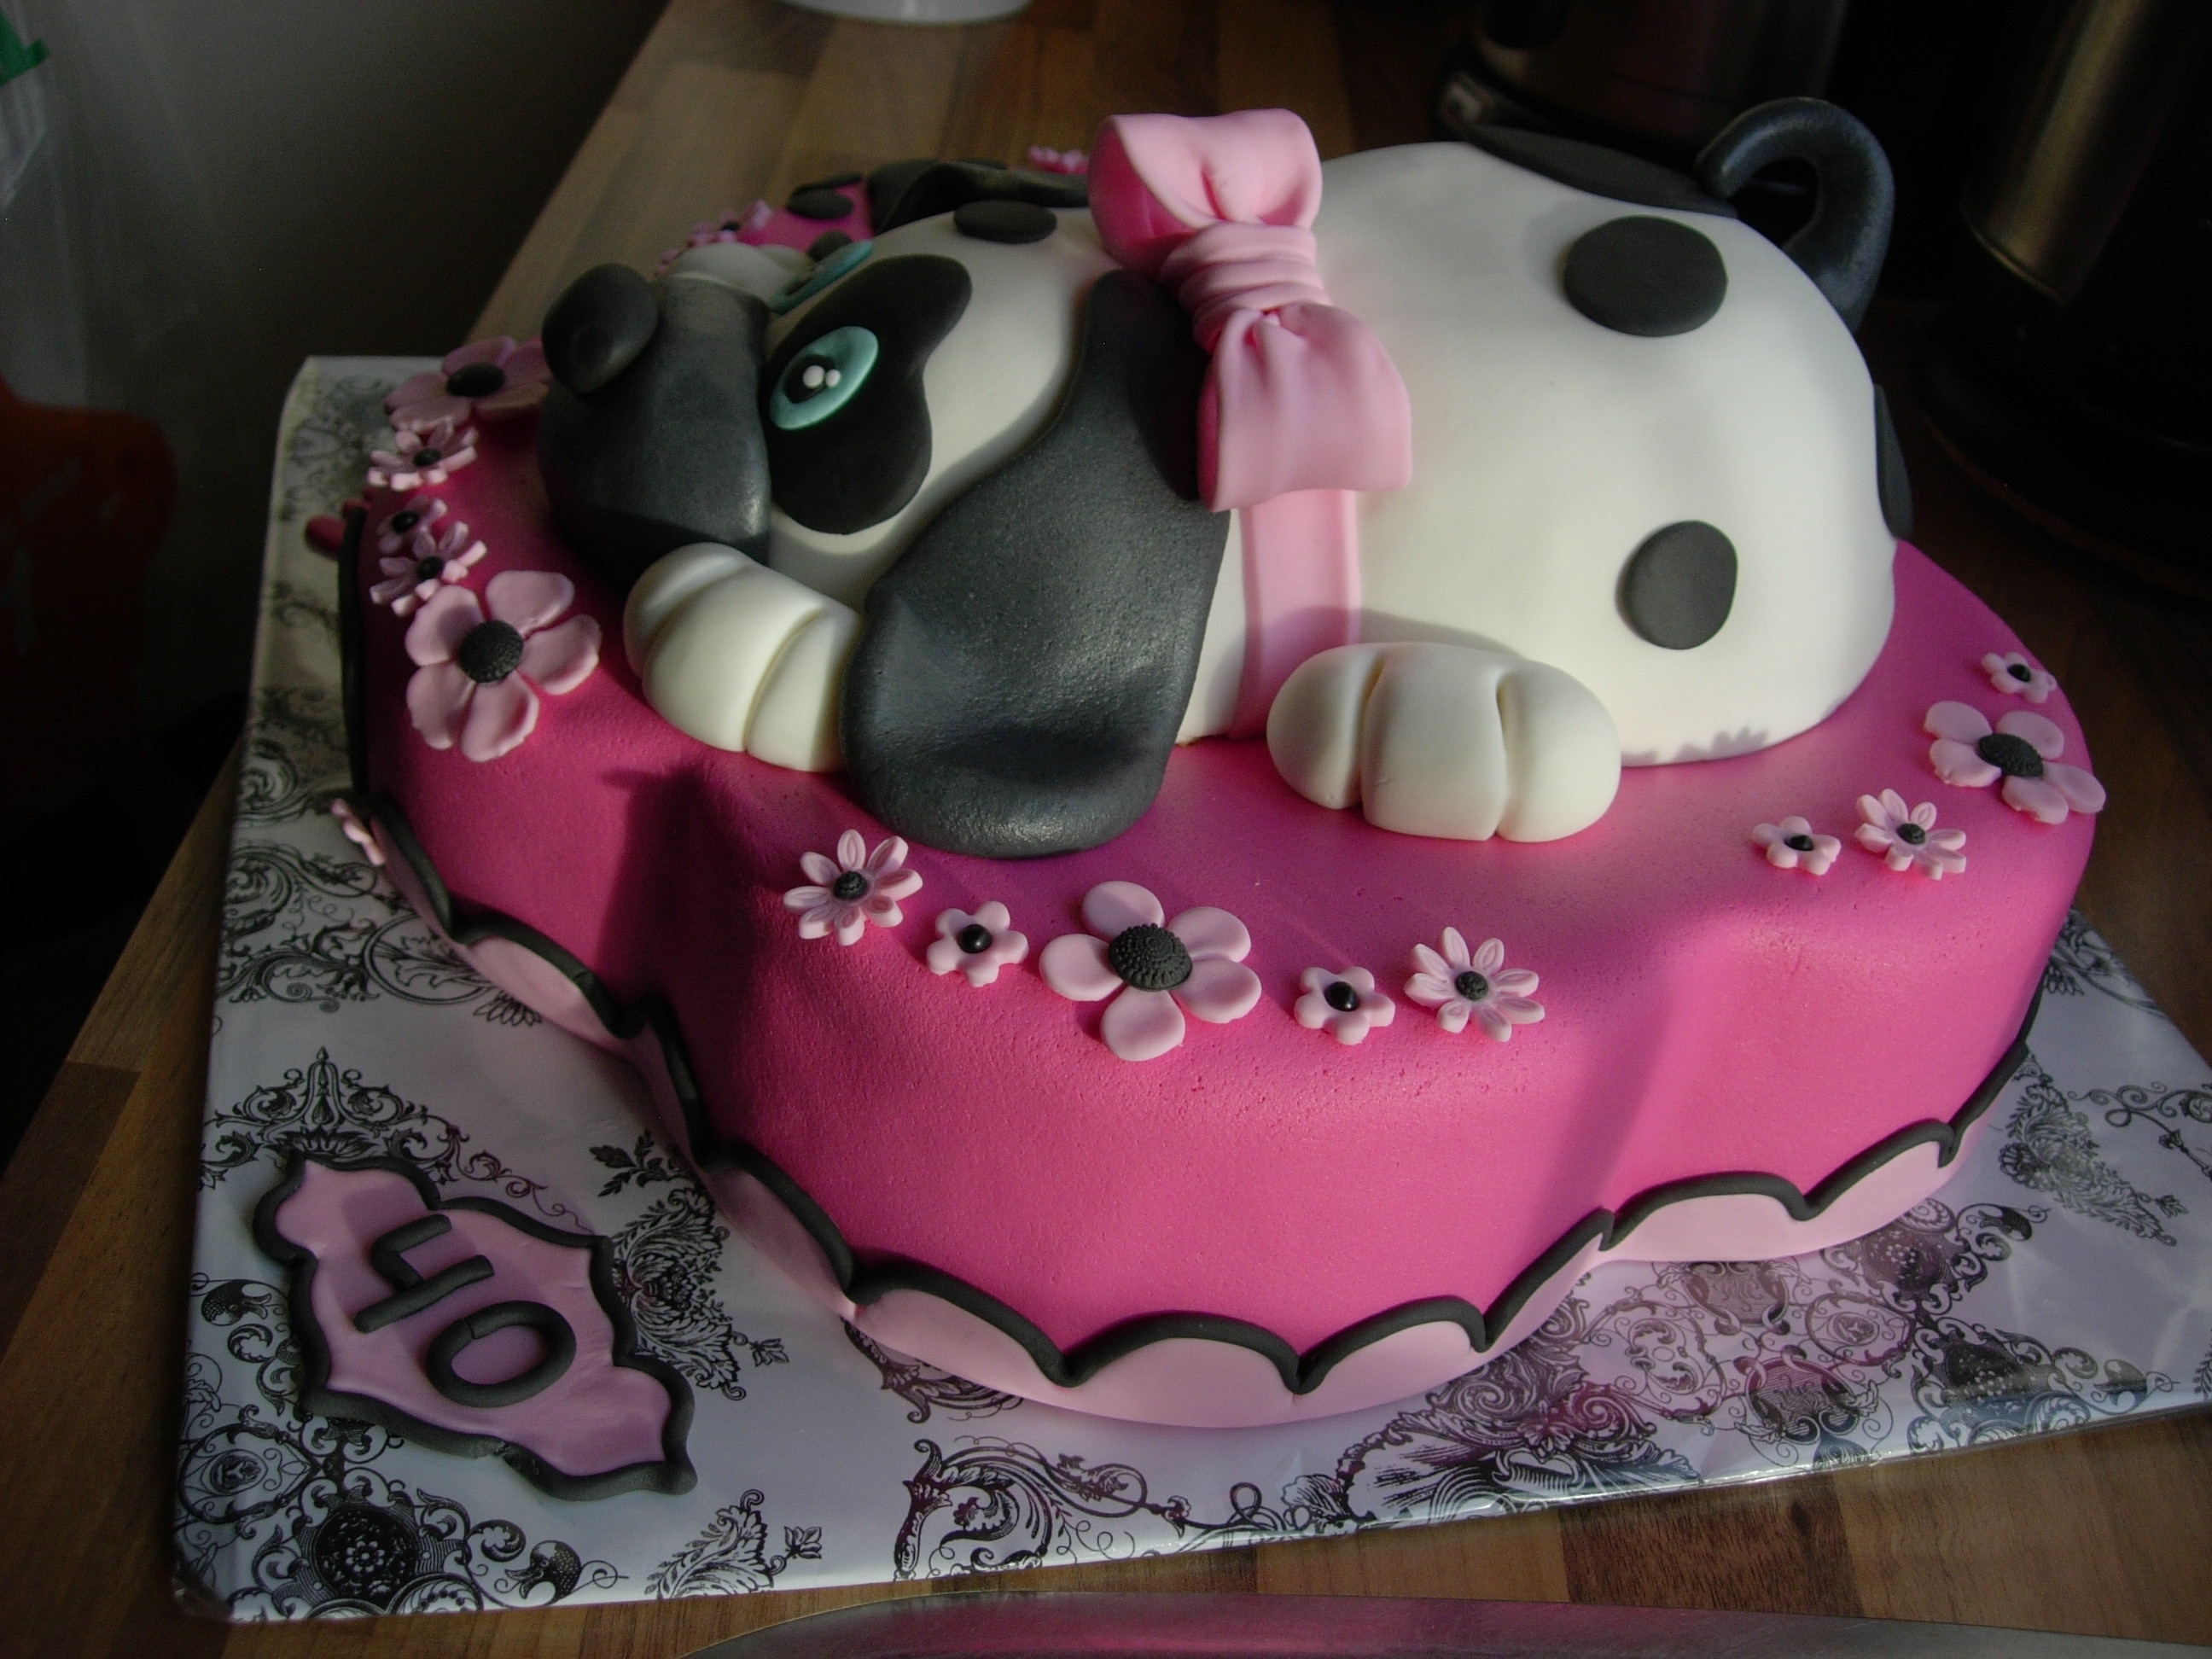 Flower Amp Dog Birthday Cake For My Daughter 7 And Husband ...